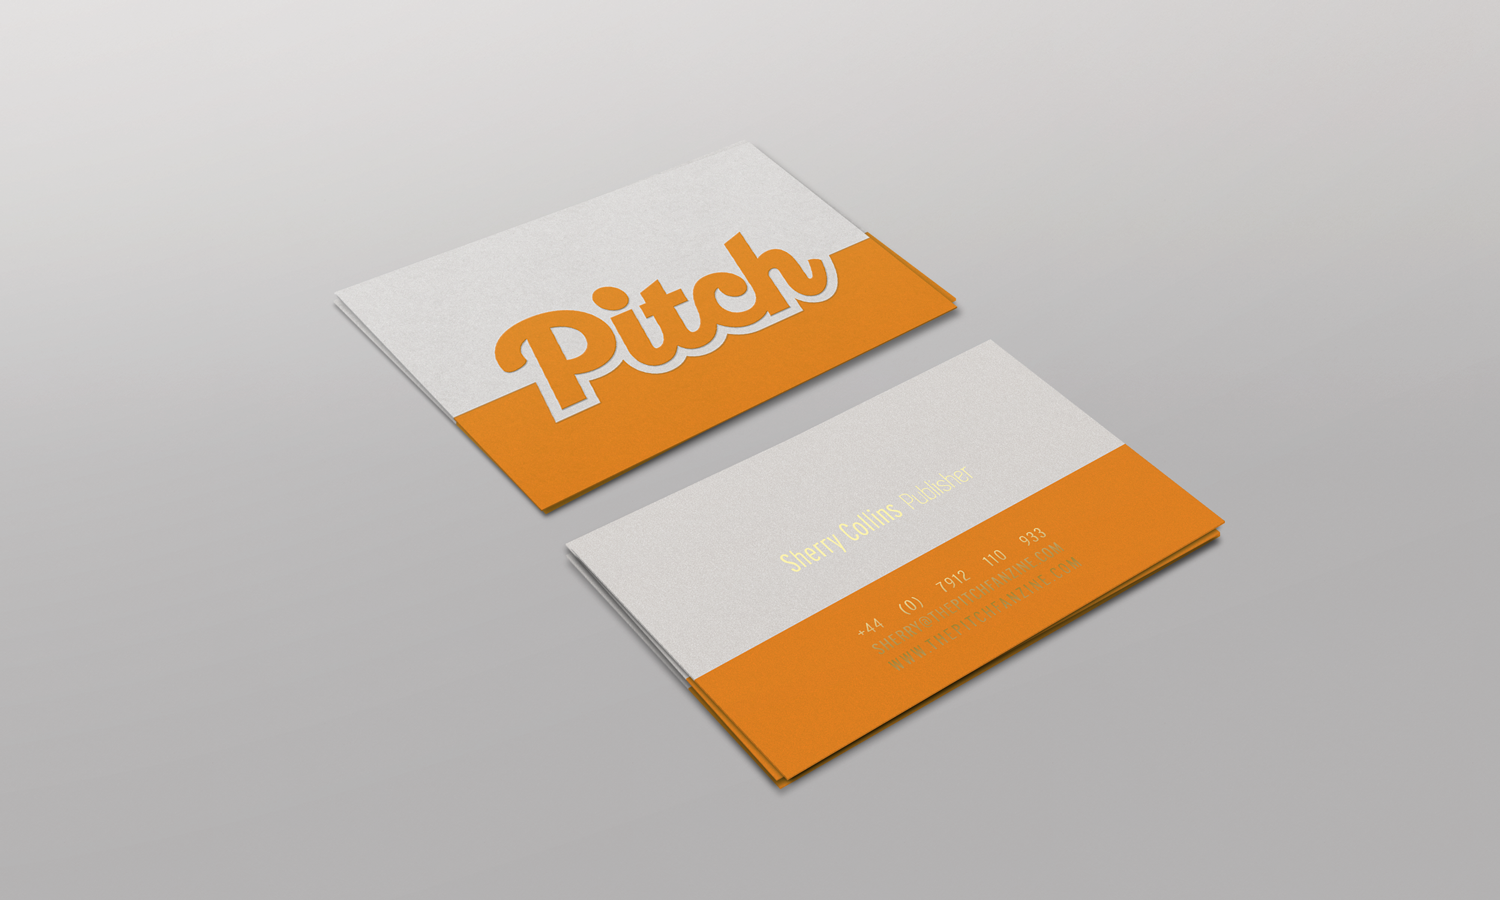 Pitch business card in orange and gold foil.